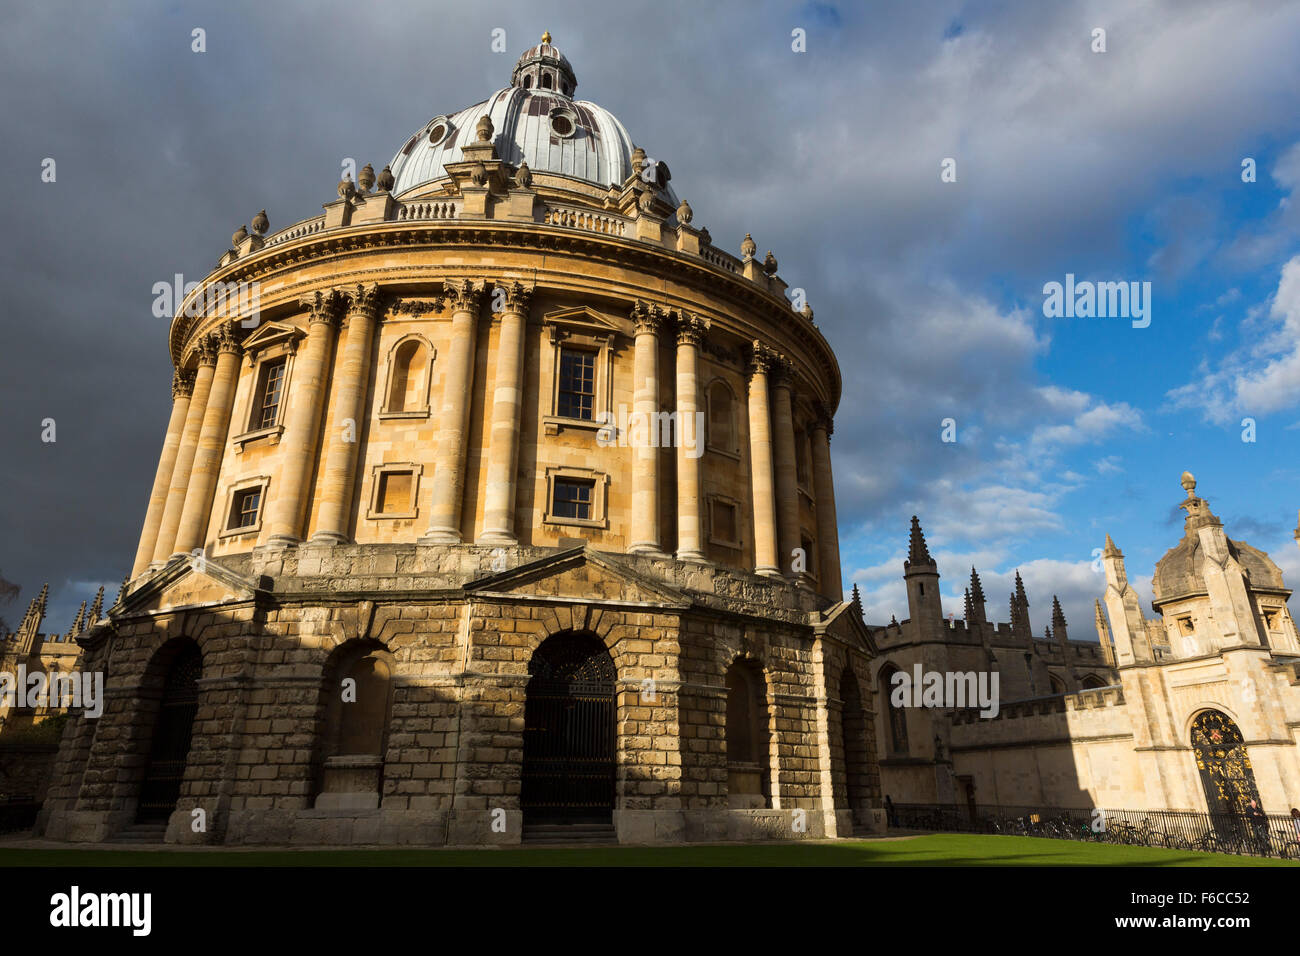 Radcliffe camera in the sun, Oxford, UK. - Stock Image